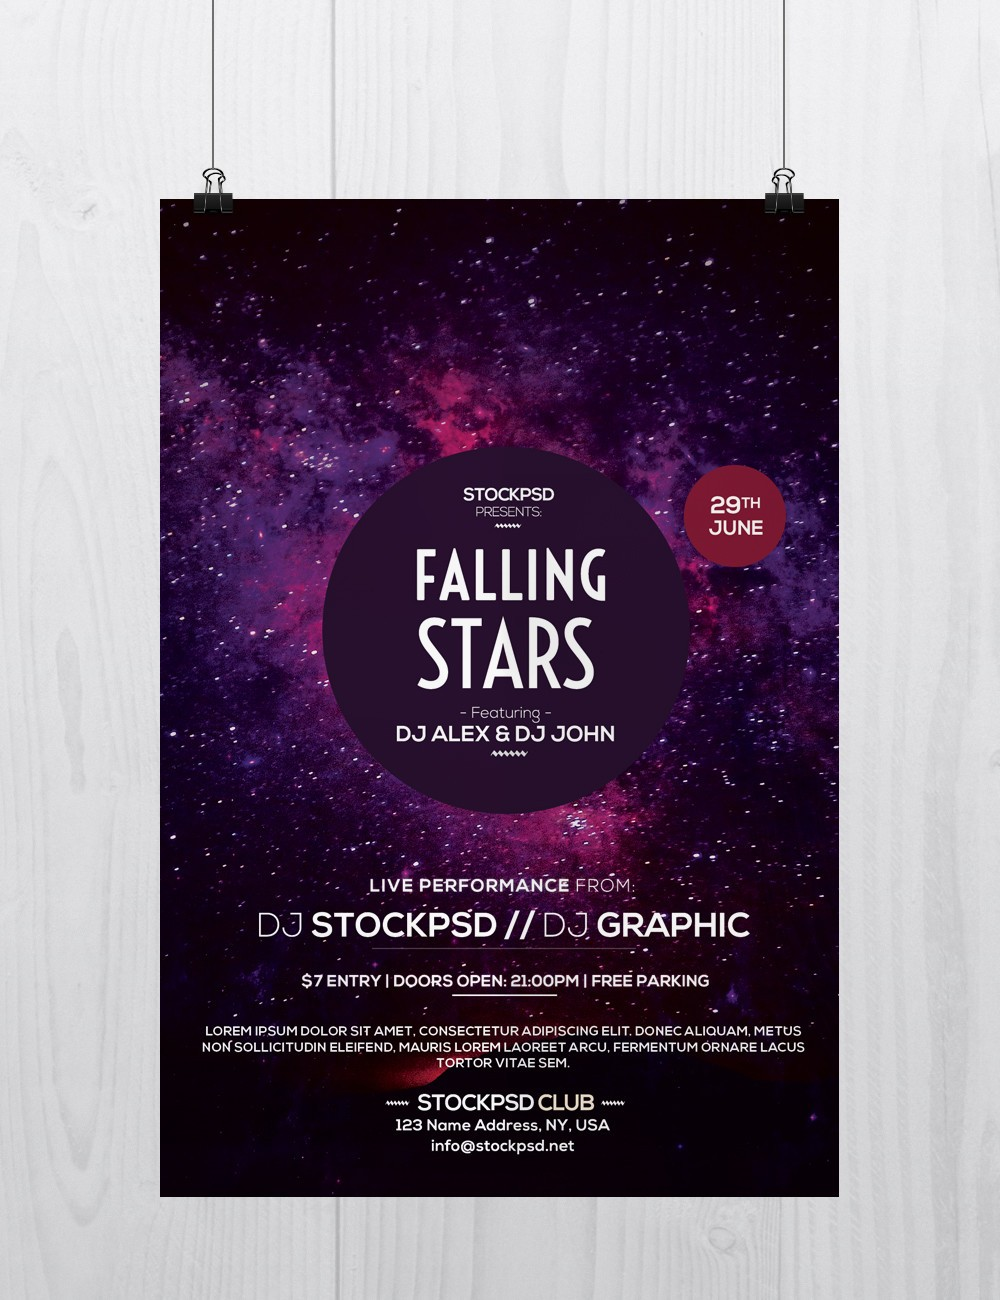 Download free psd photoshop flyer posters templates stockpsd falling stars download freebie psd flyers template saigontimesfo